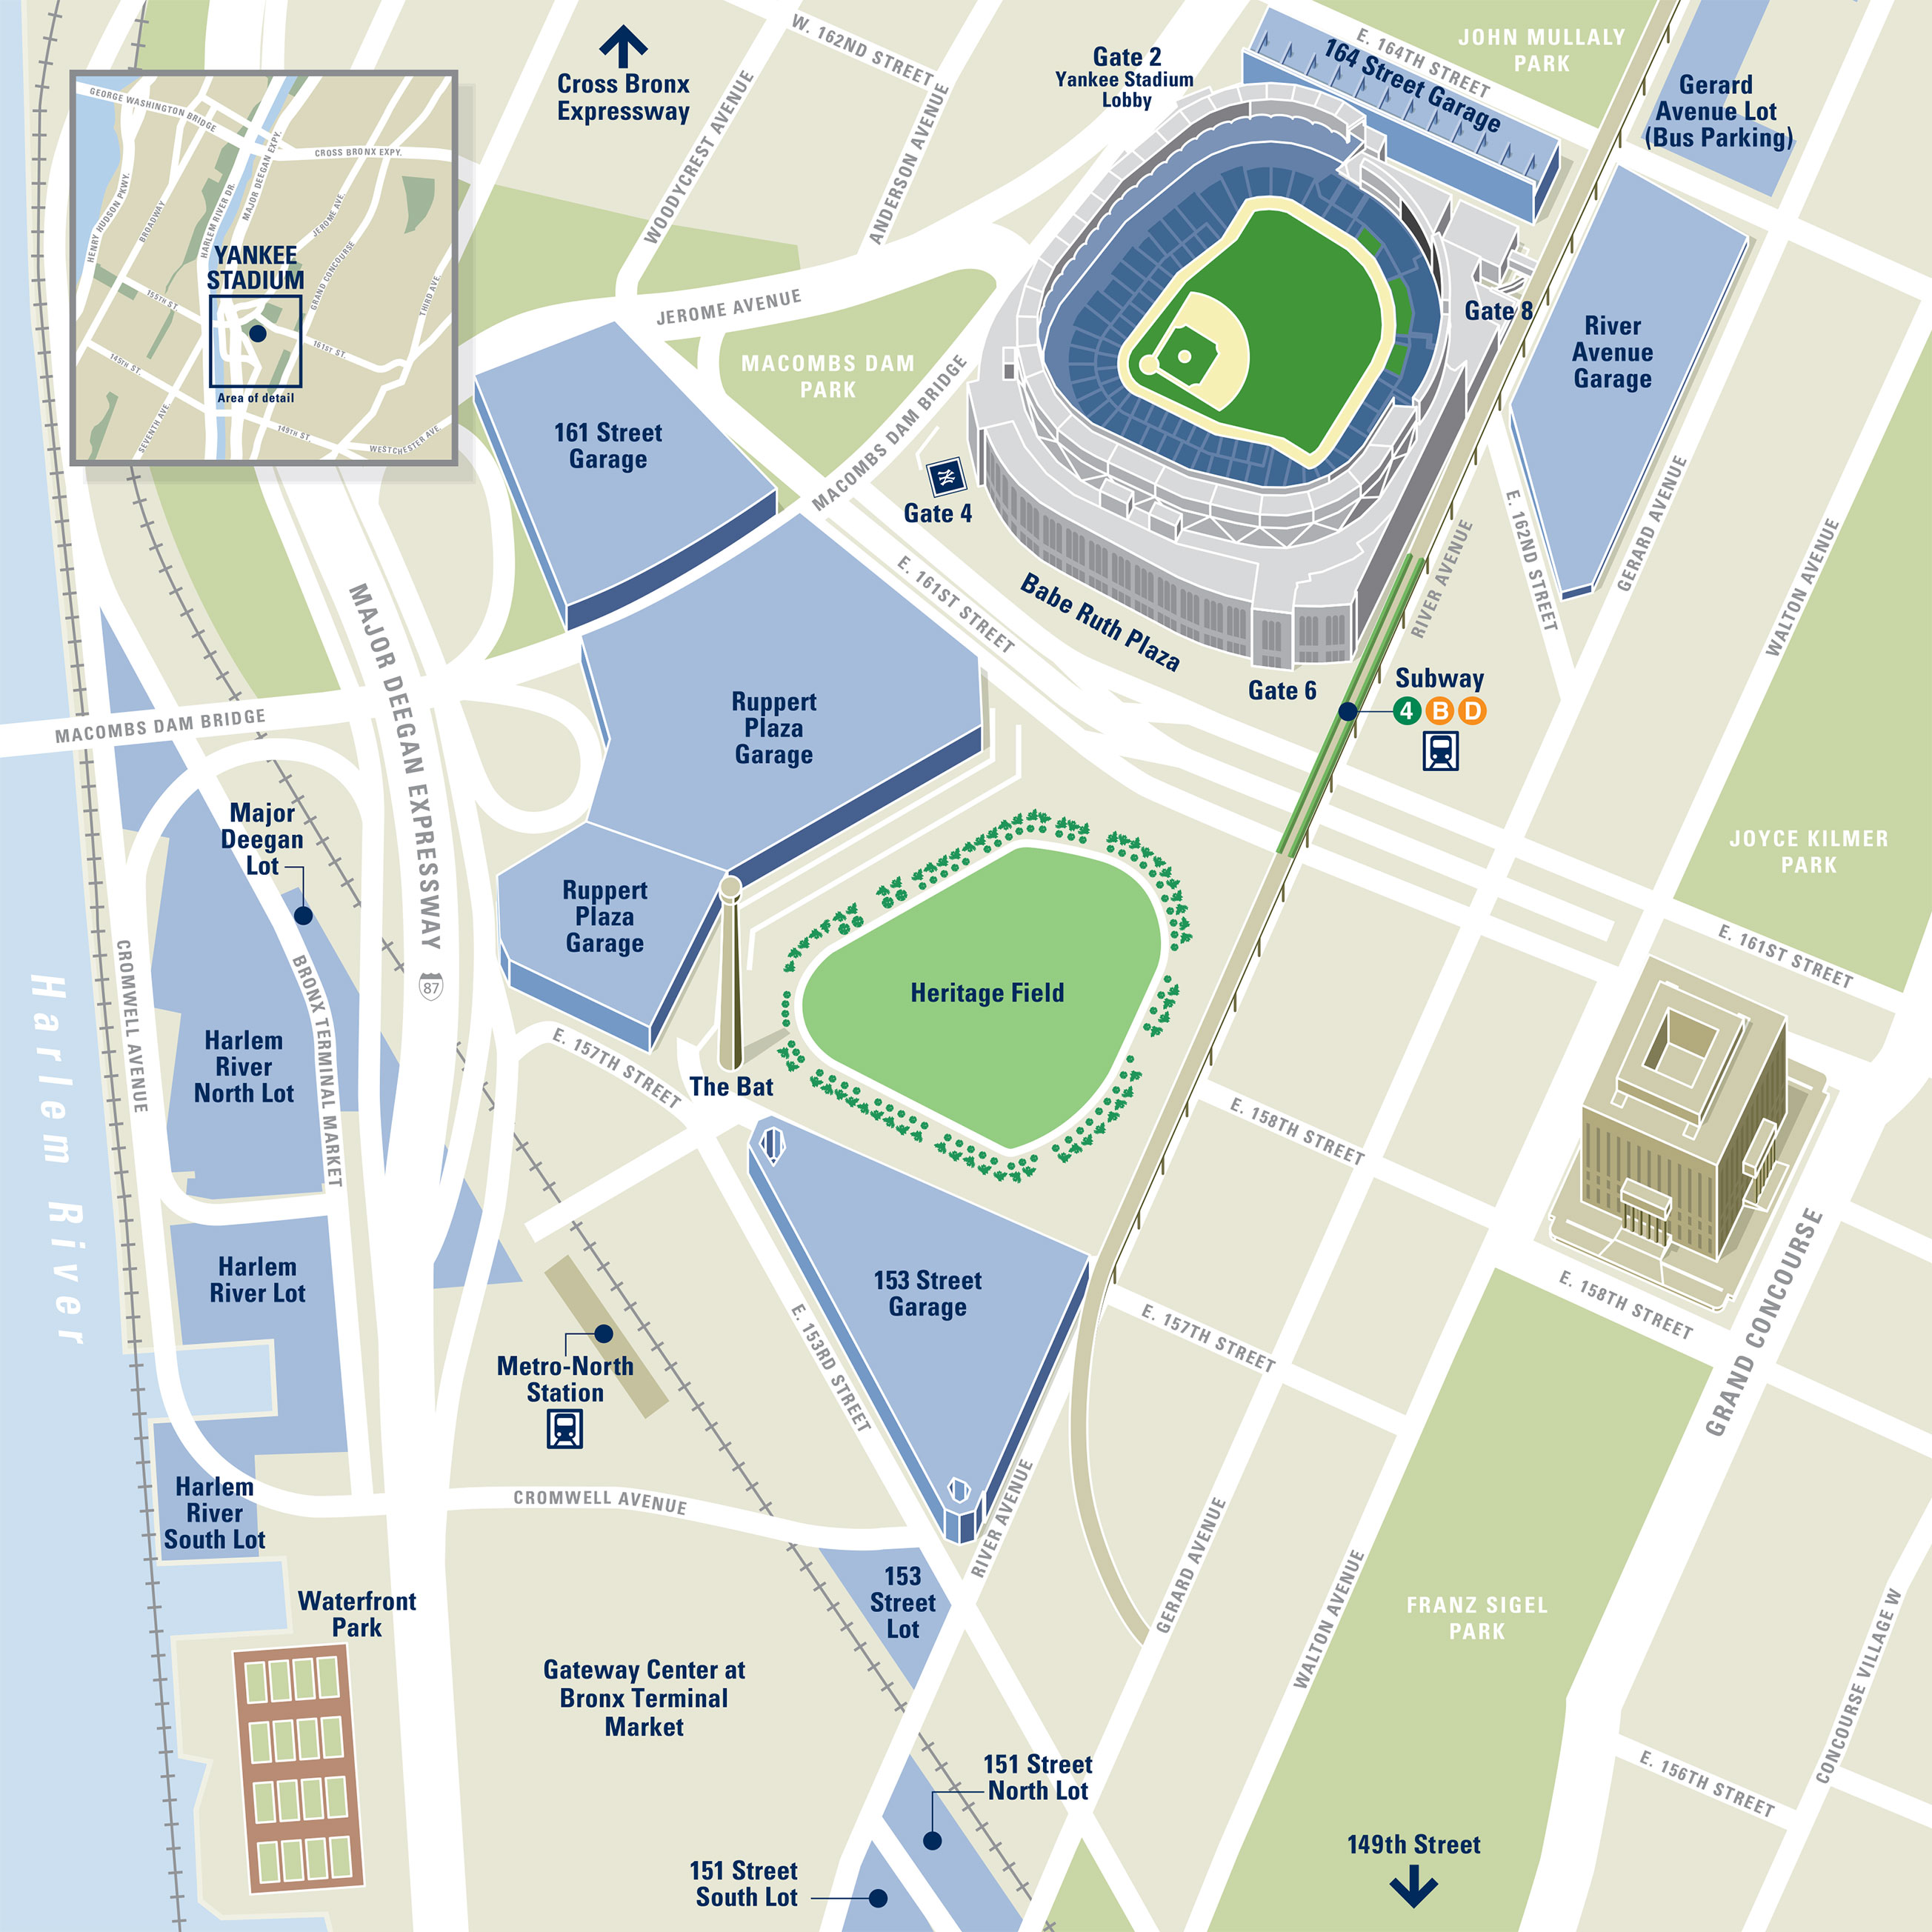 Yankee Stadium Directions and Parking Info | New York Yankees